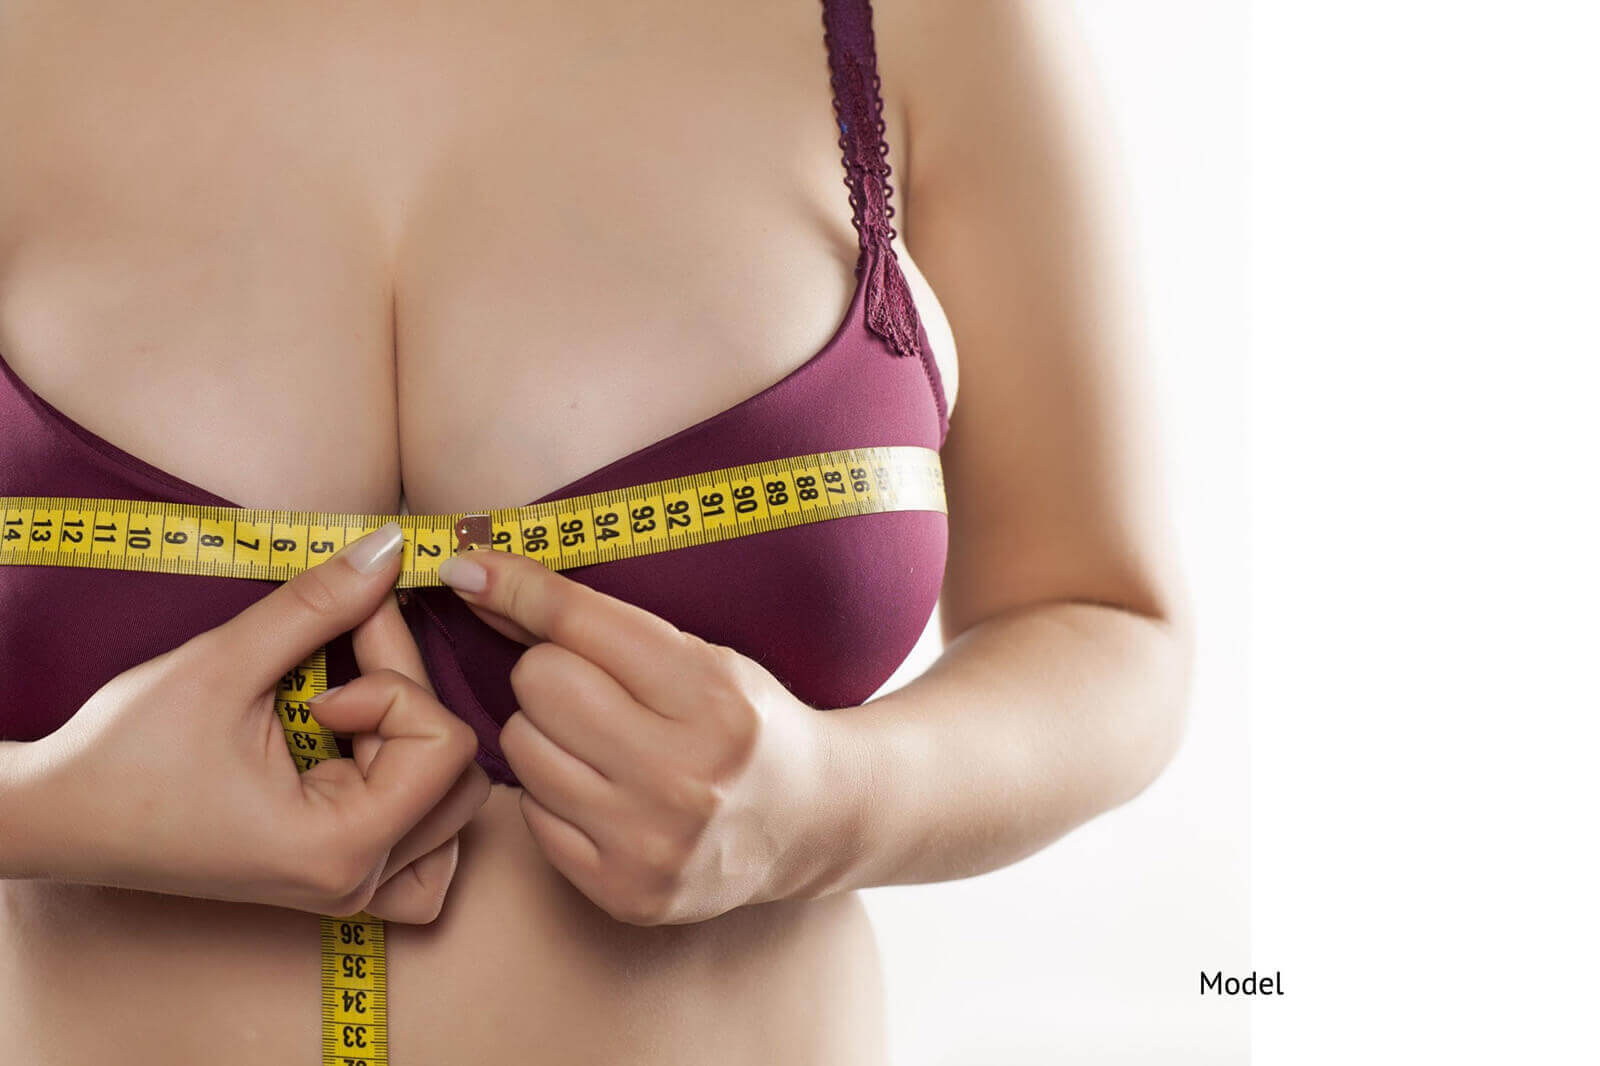 woman measuring her breasts considering breast augmentation